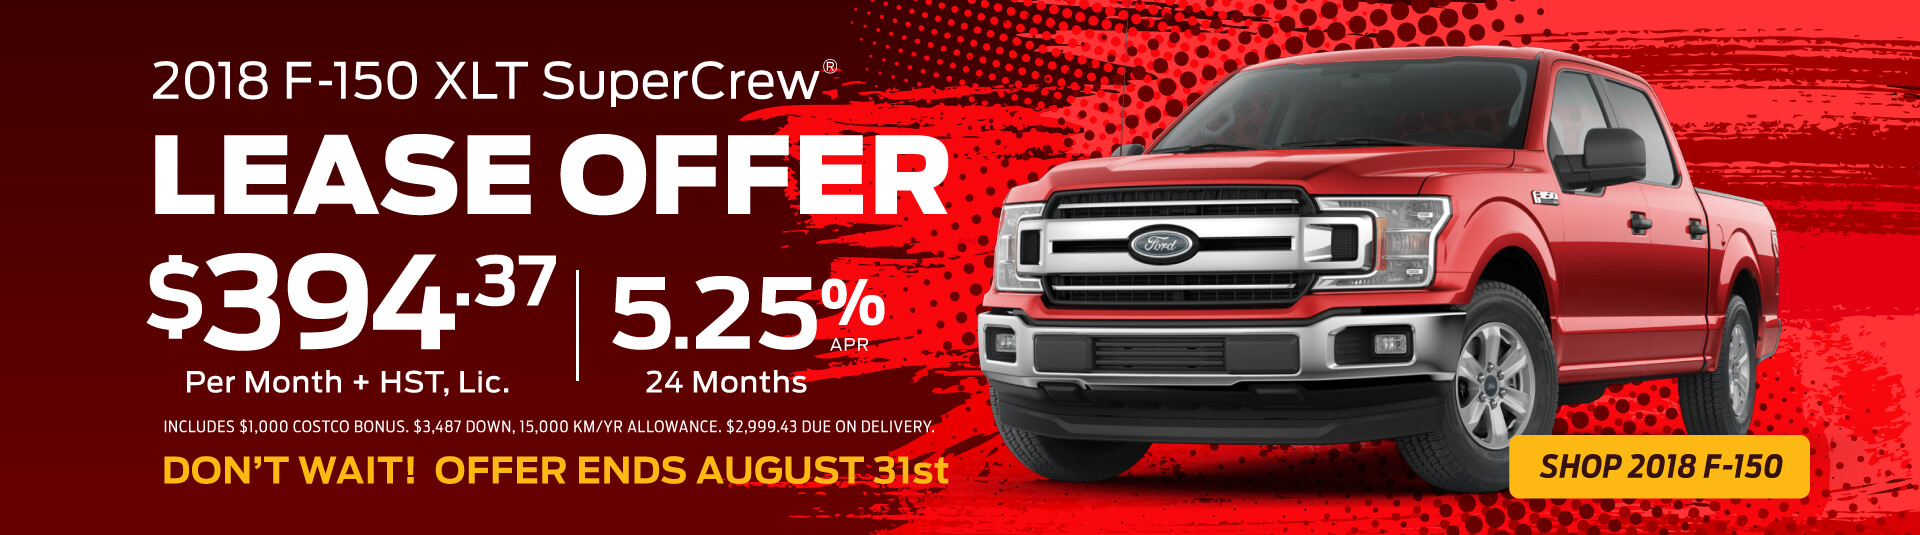 2018 Ford F-150 Offer